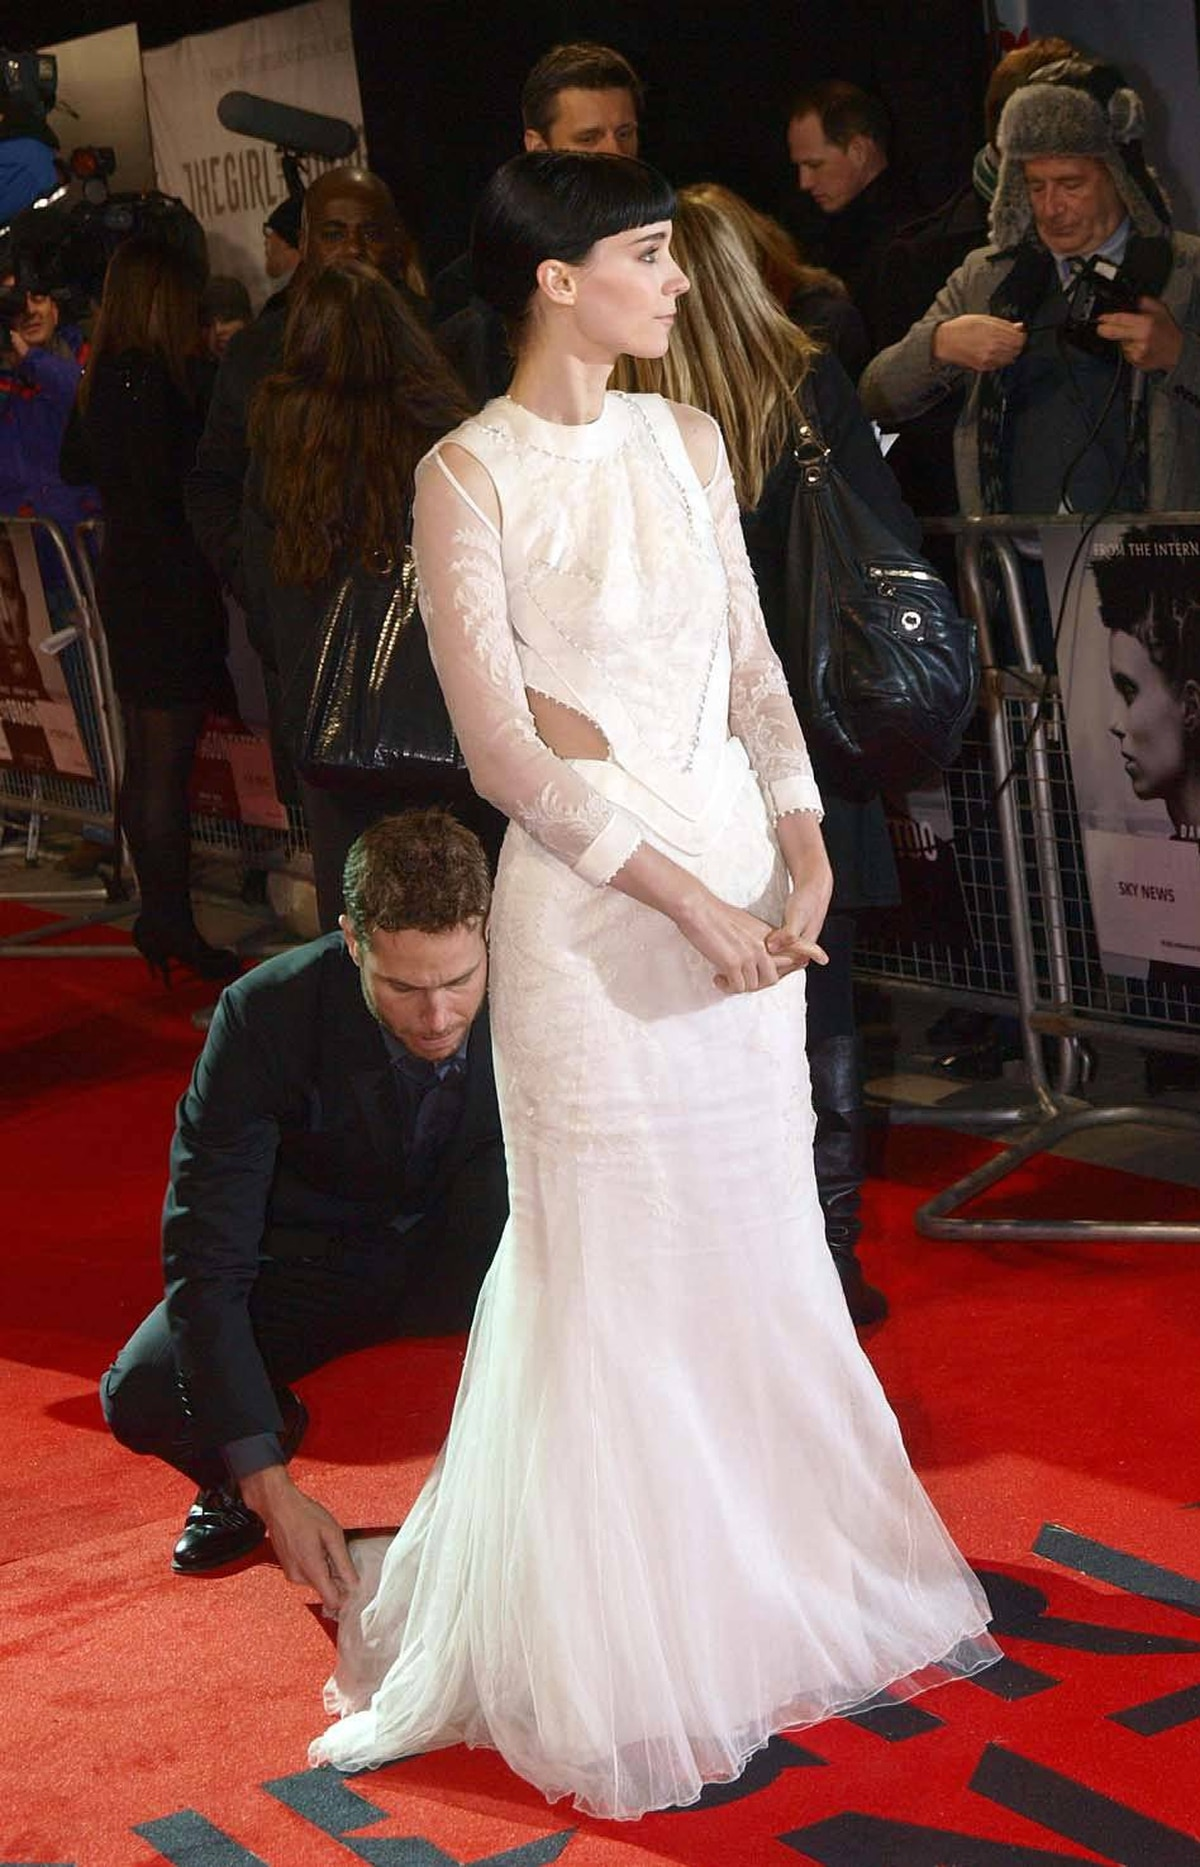 """Actress Rooney Mara prepares to throw a completely spontaneous look over the shoulder of her perfectly flowing gown at the world premiere of """"The Girl with the Dragon Tattoo"""" in London on Monday"""